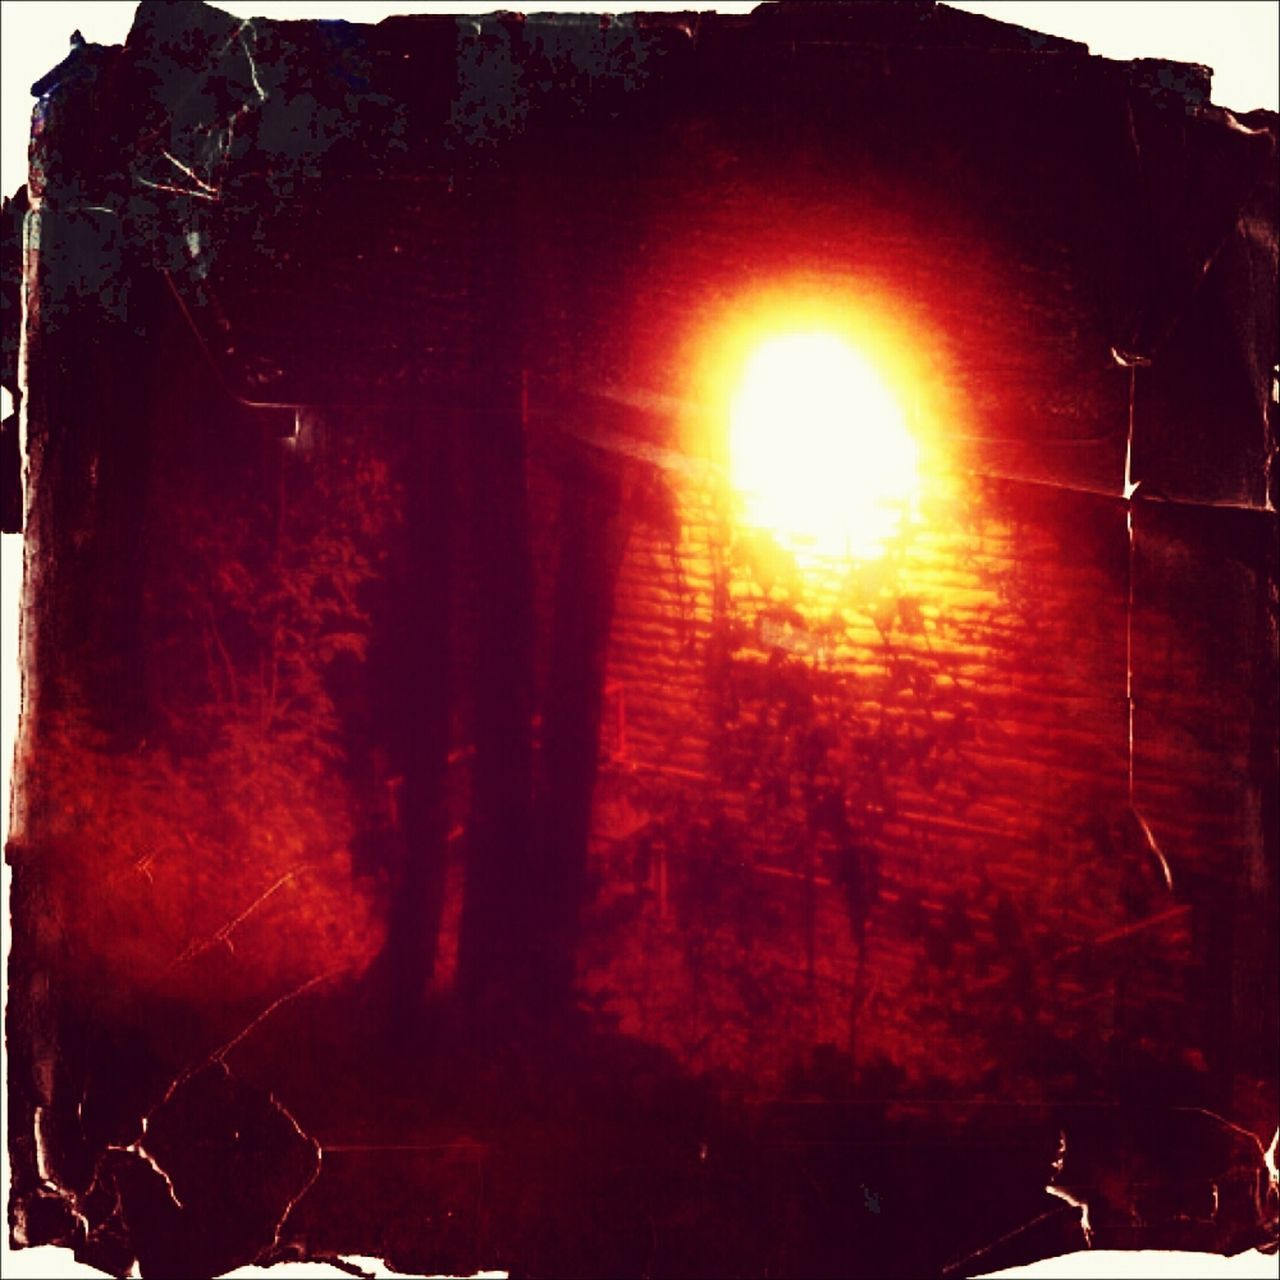 Andrography Phoneography Lomography The New Light